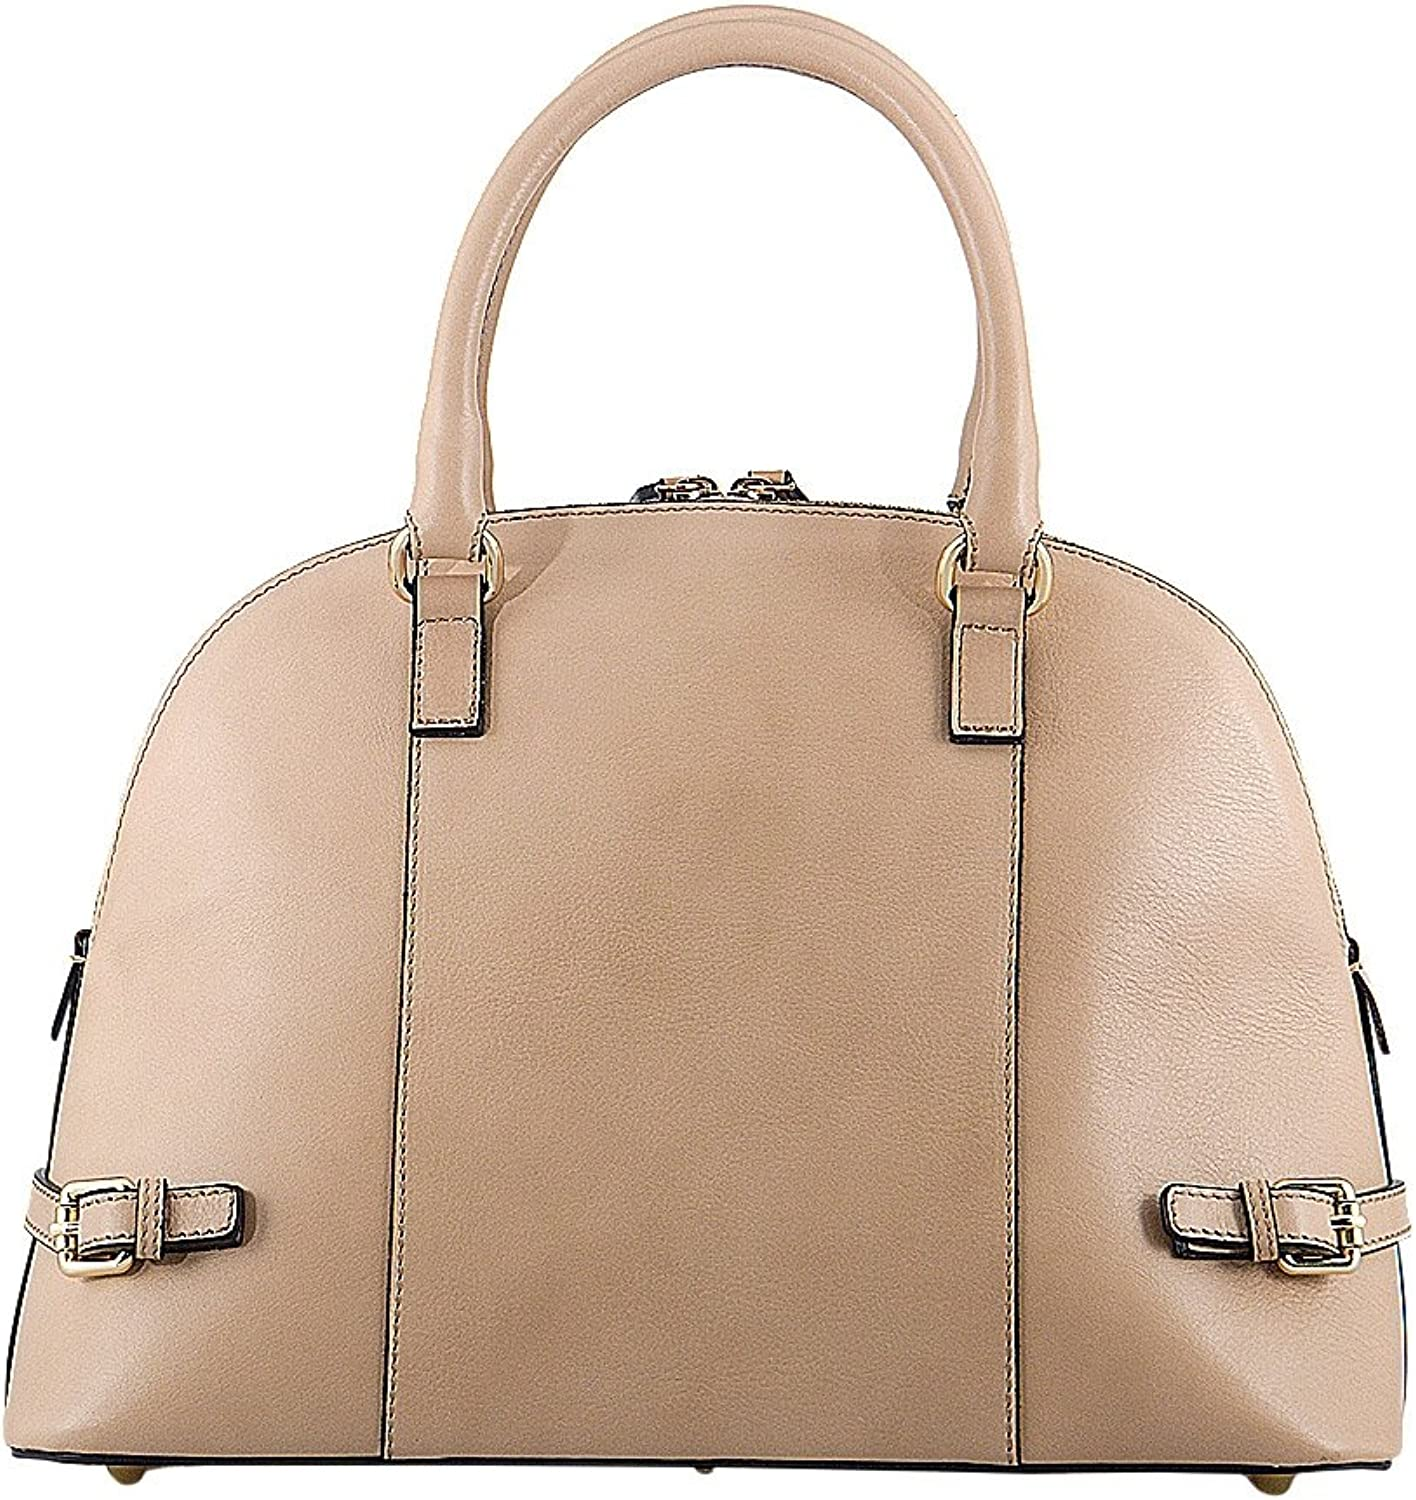 HONEY BAG Italian Leather Cowhide leather women's purse with removable strap ORIETTA  BEIGE